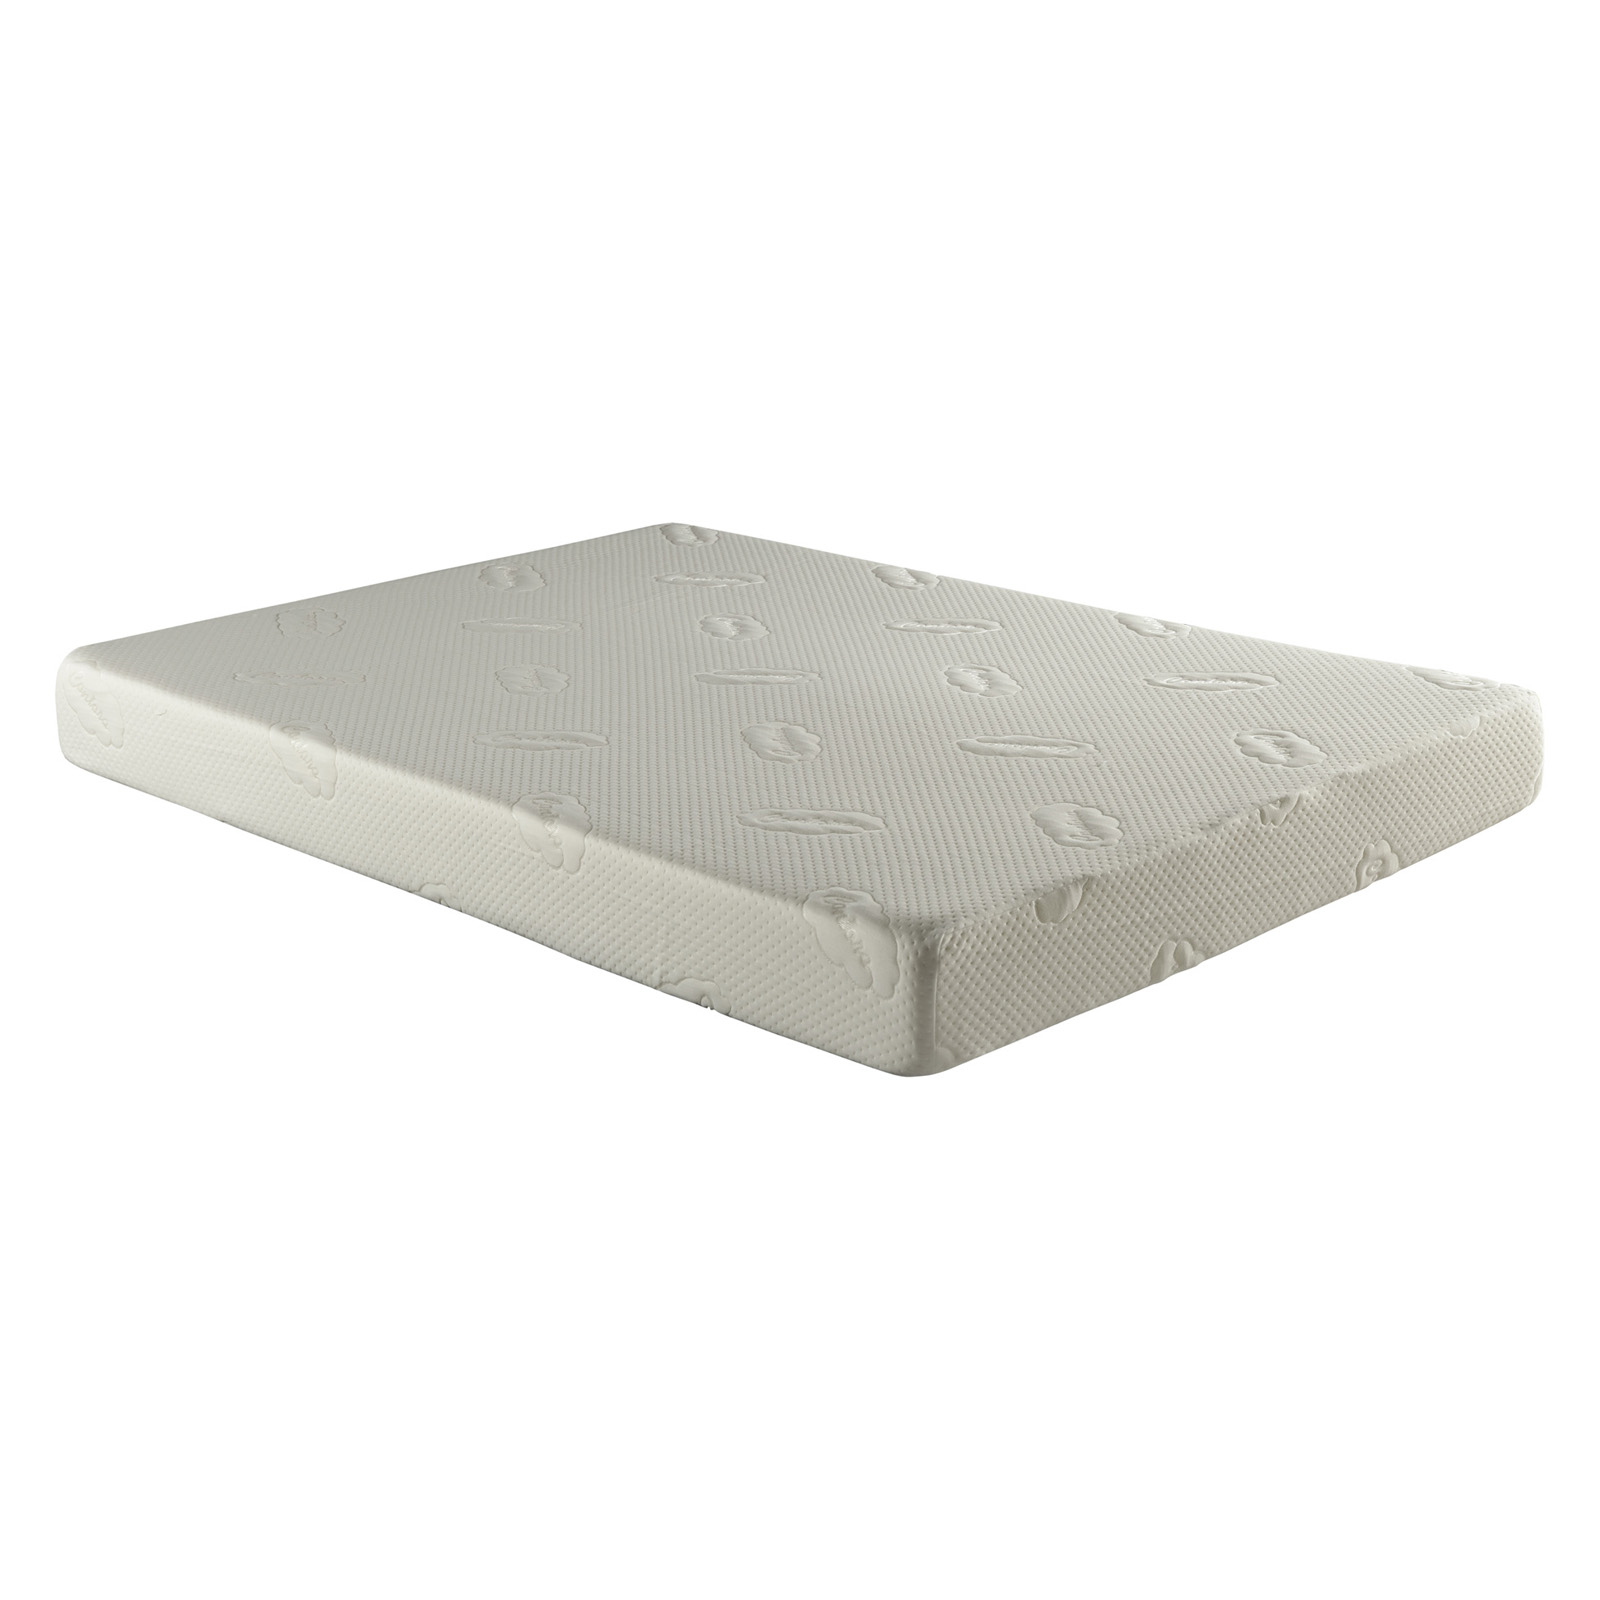 Atlantic Furniture Siesta 7 In Memory Foam Mattress With Woven Mattress Foundation Bed